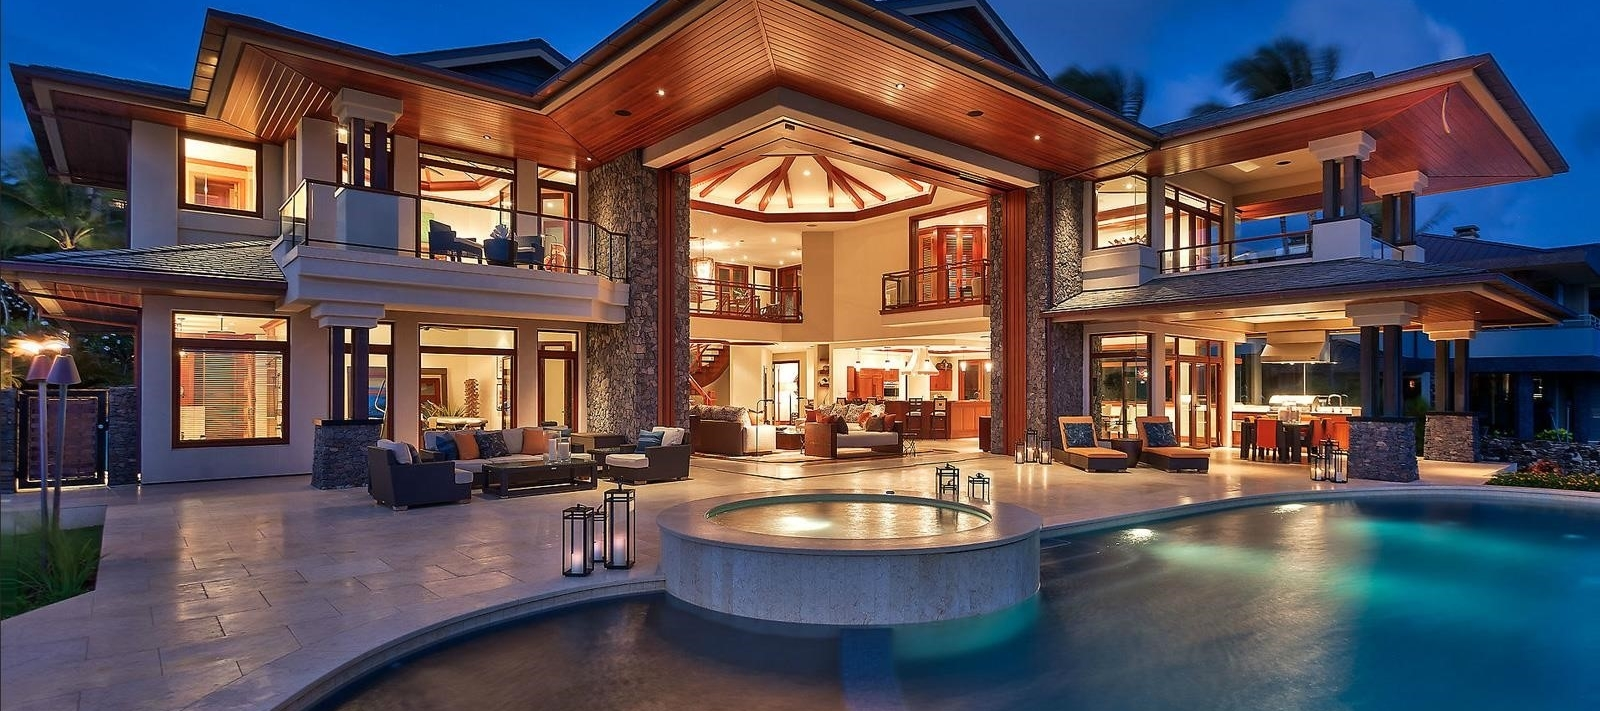 Luxurious homes